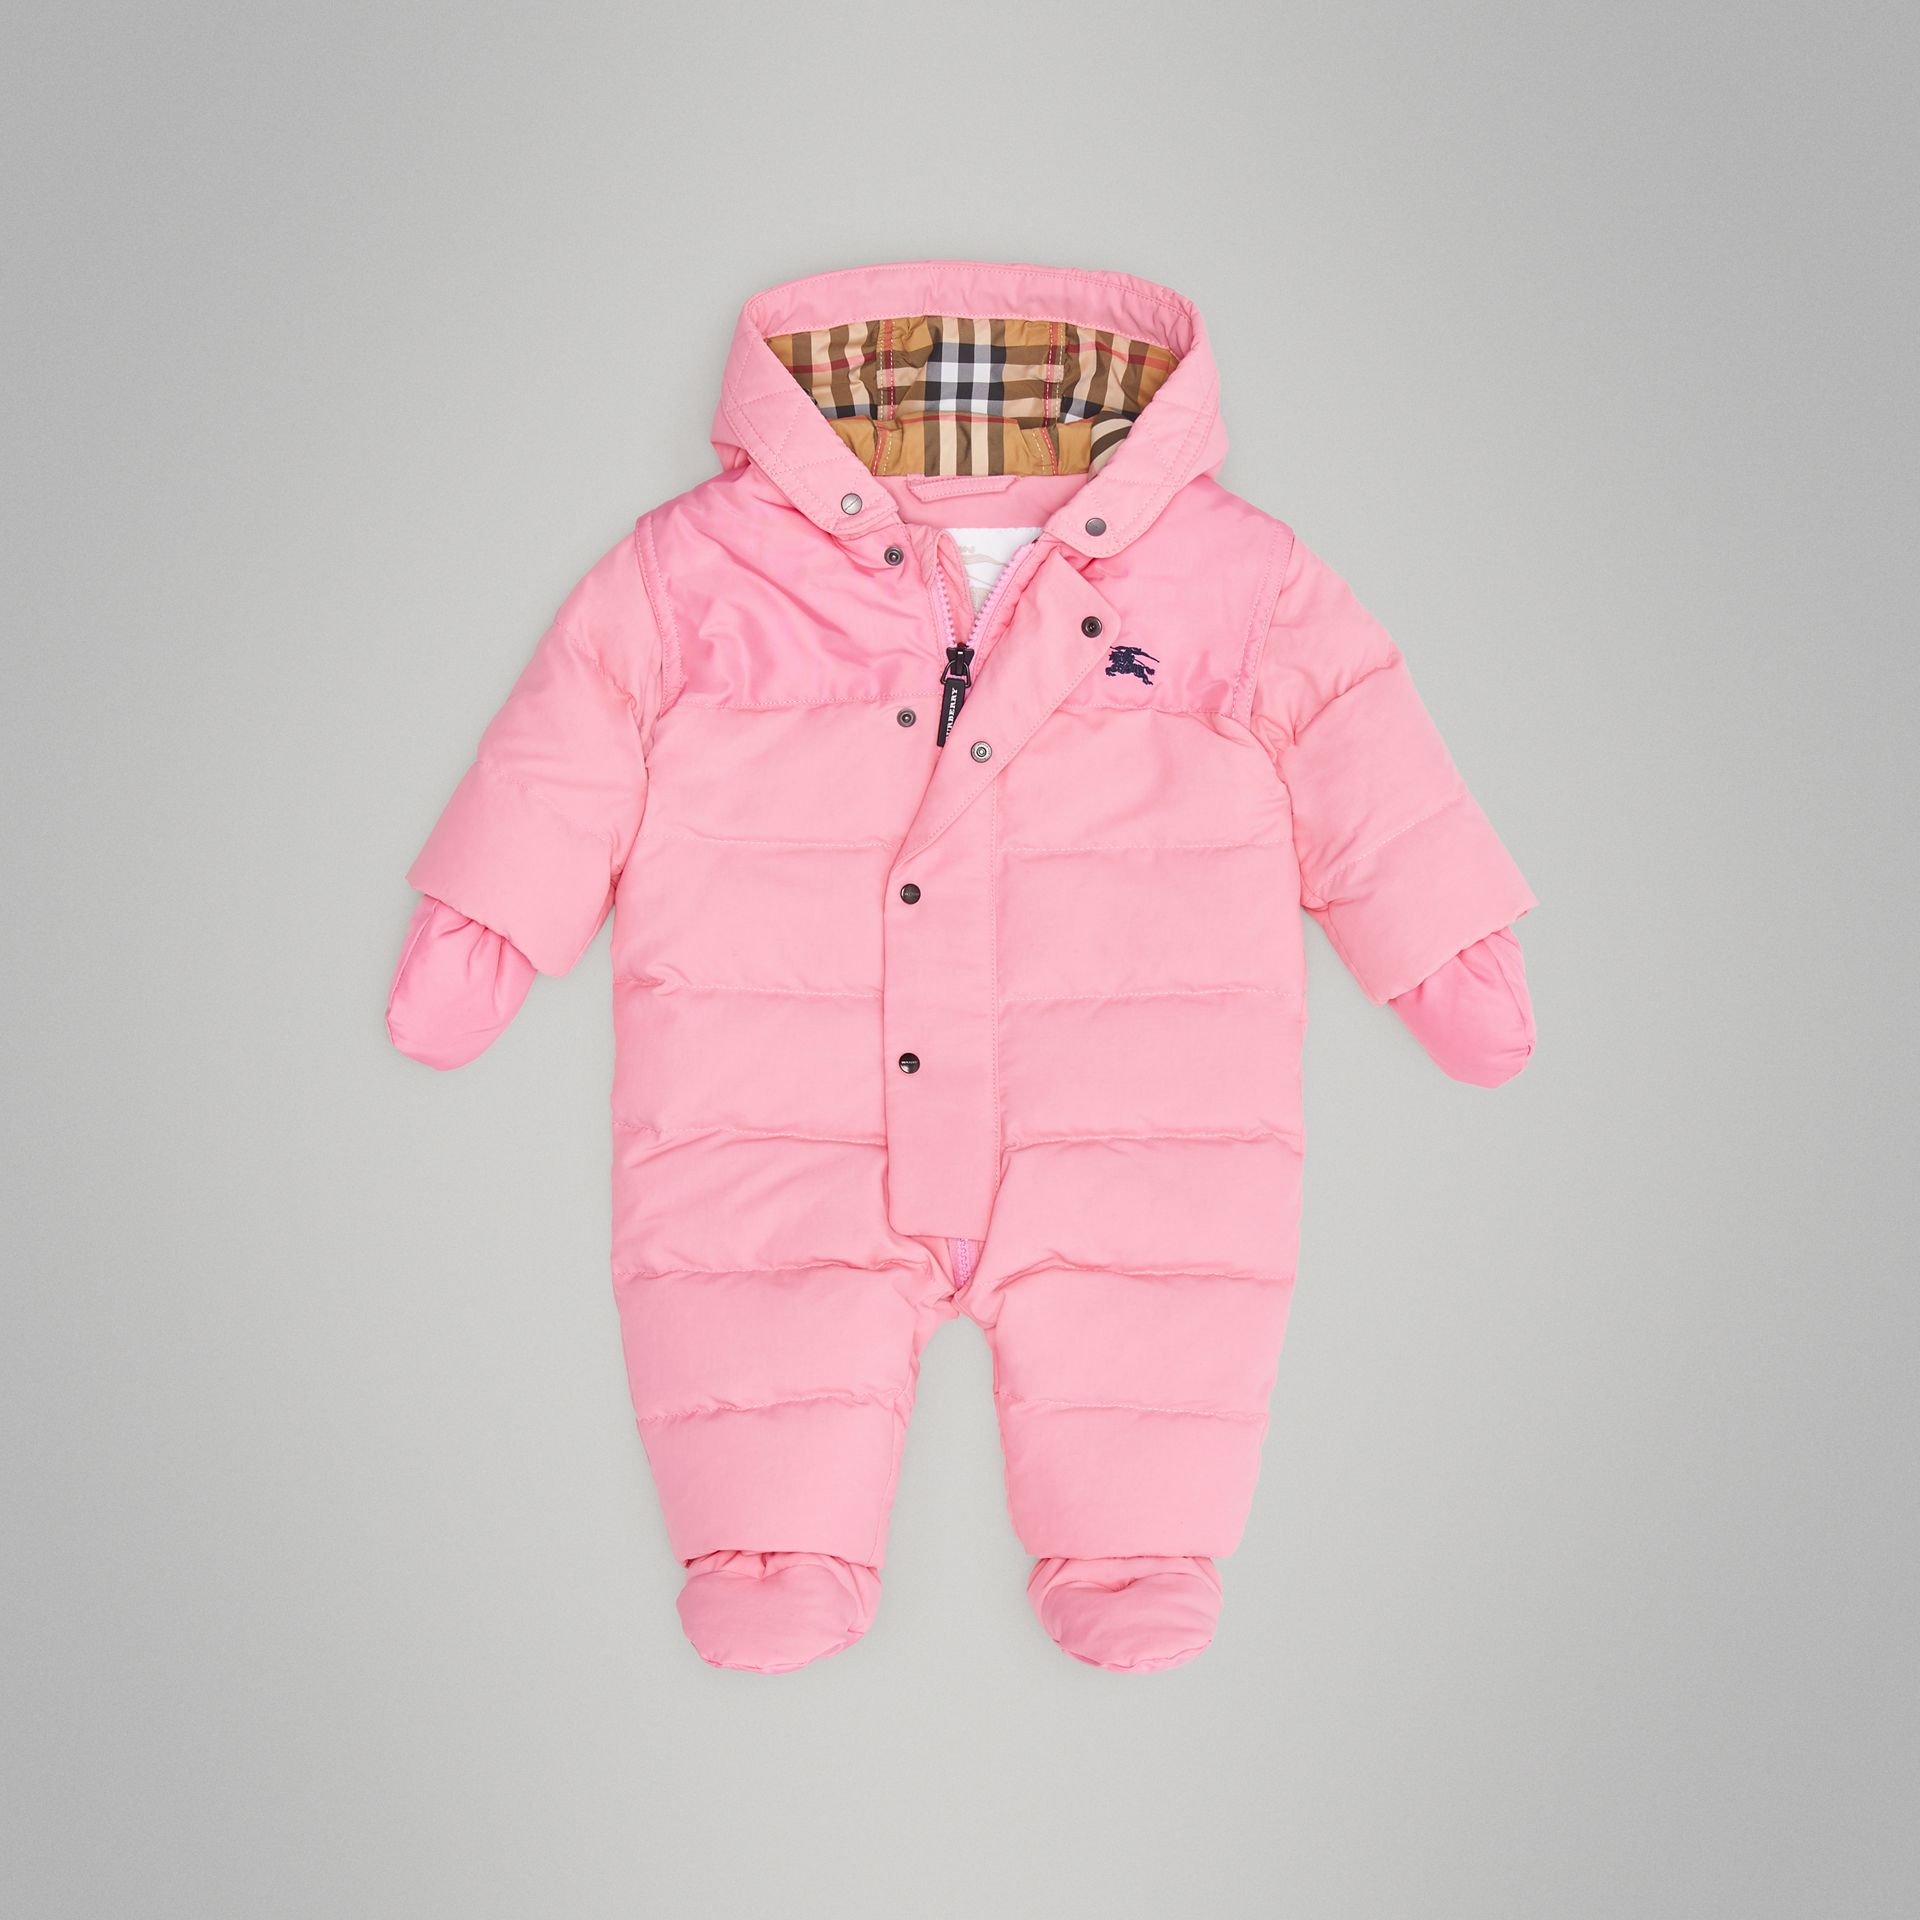 Down-filled Puffer Suit in Ice Pink - Children | Burberry - gallery image 2